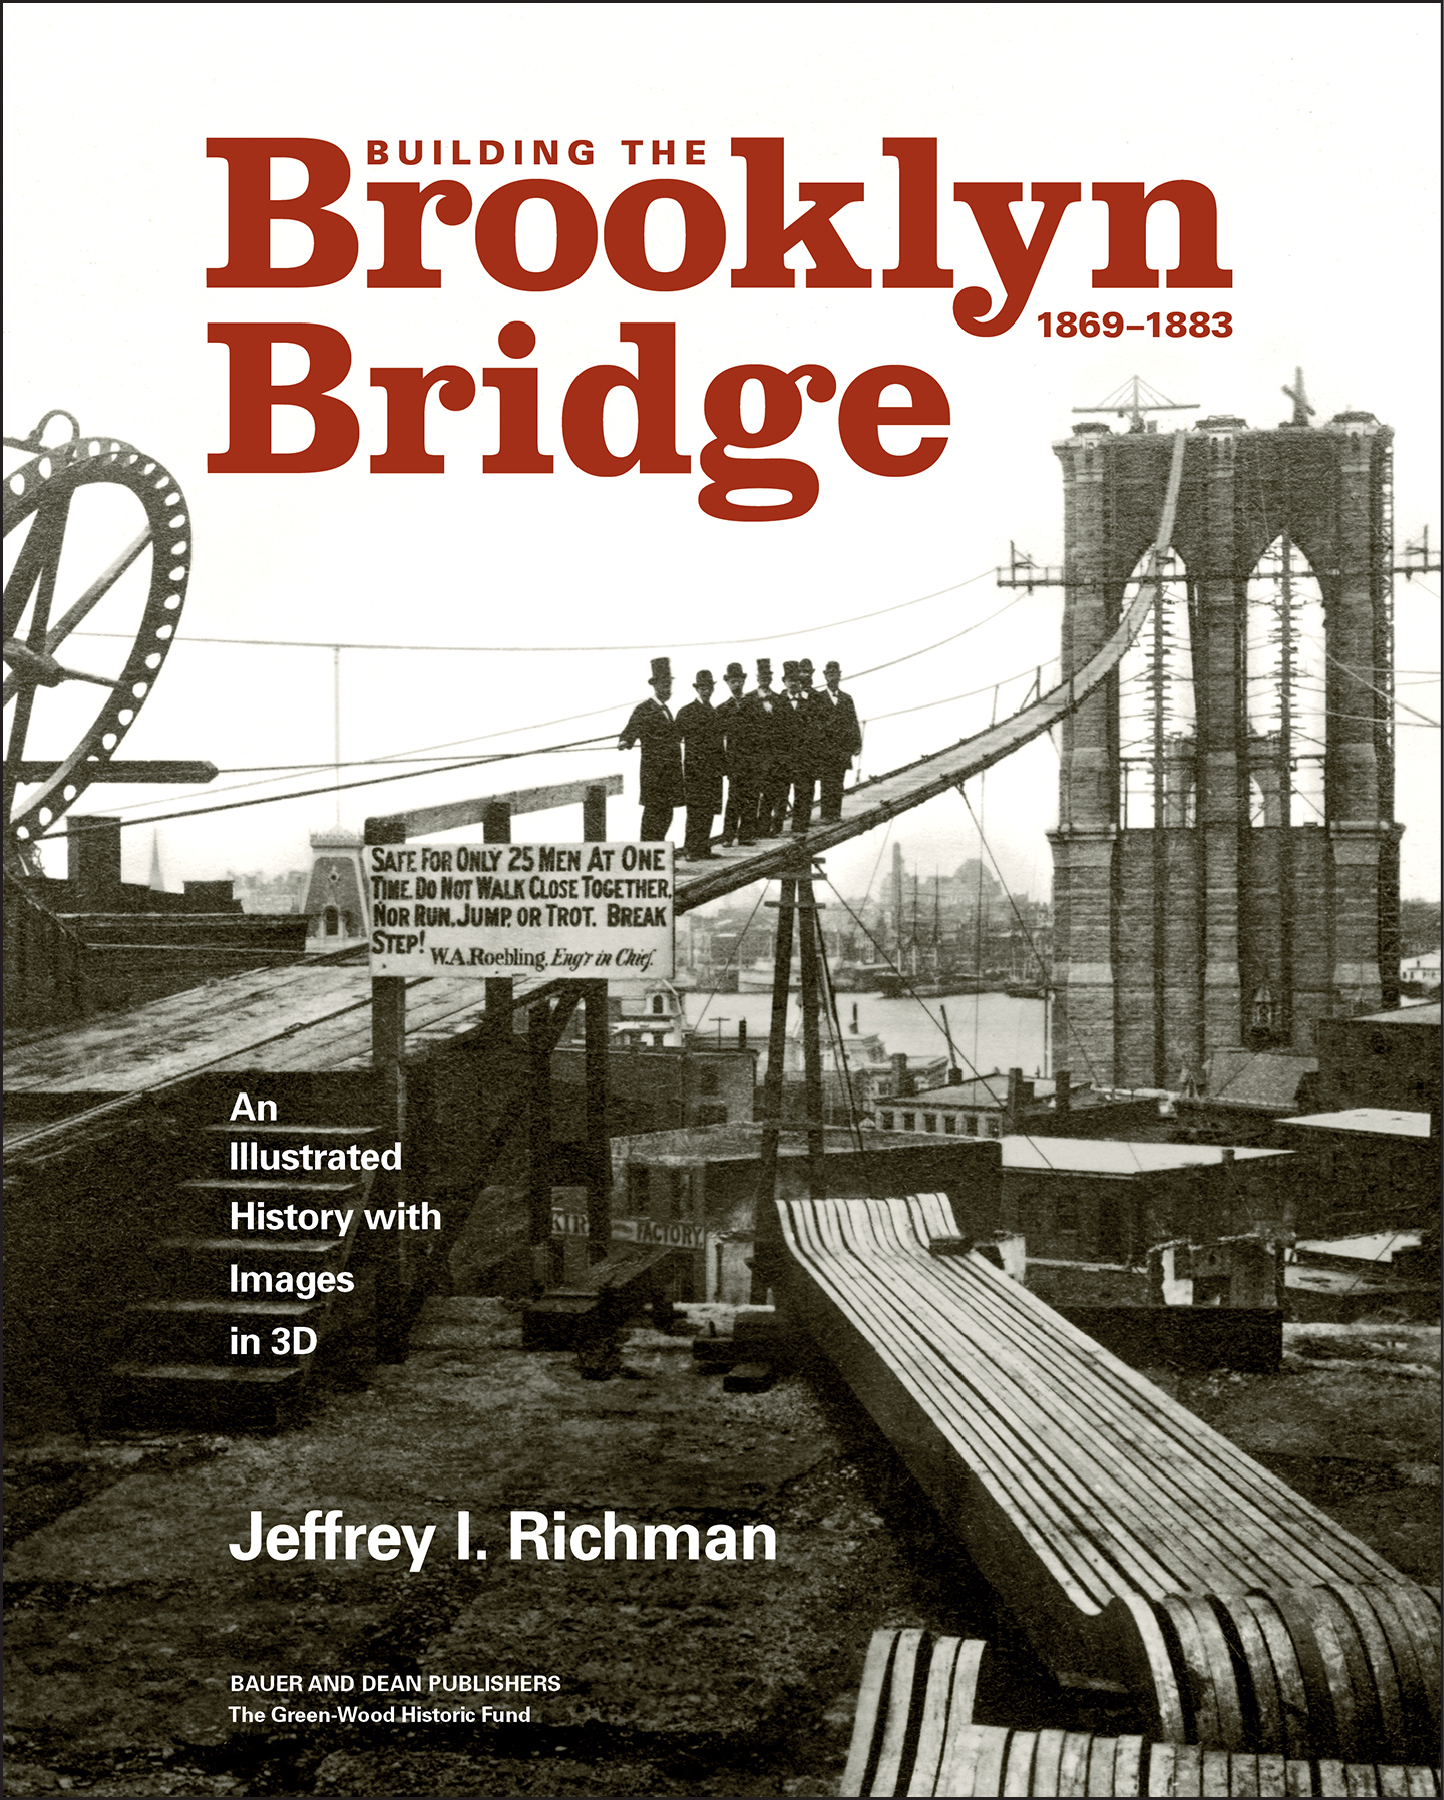 An image of the cover of Jeffrey I. Richman's book, Building the Brooklyn Bridge.